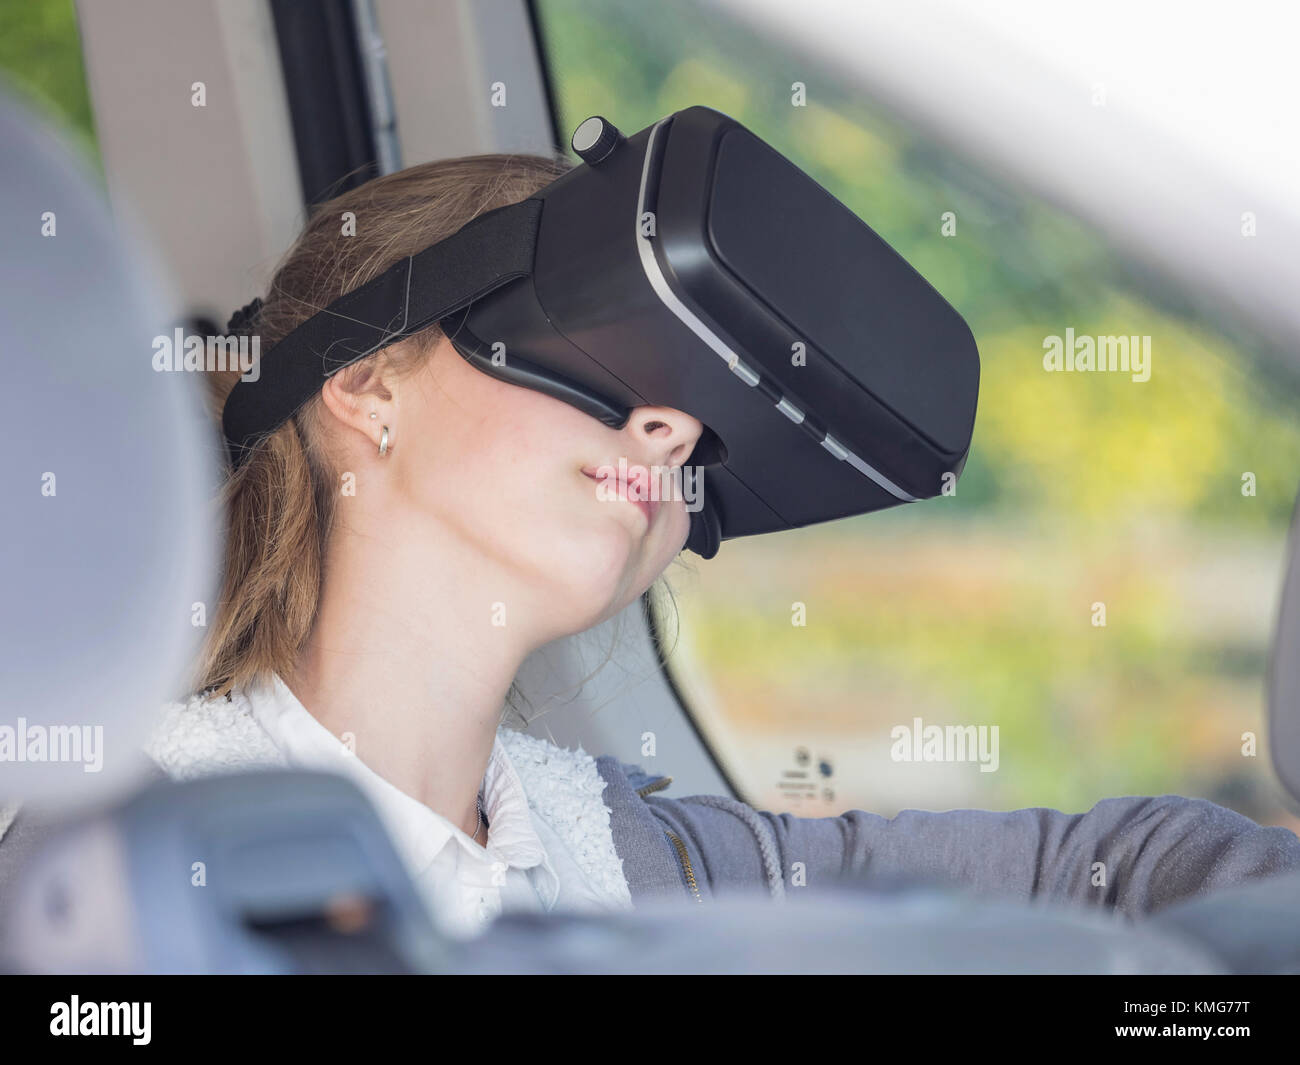 Girl using virtual reality headset in car - Stock Image